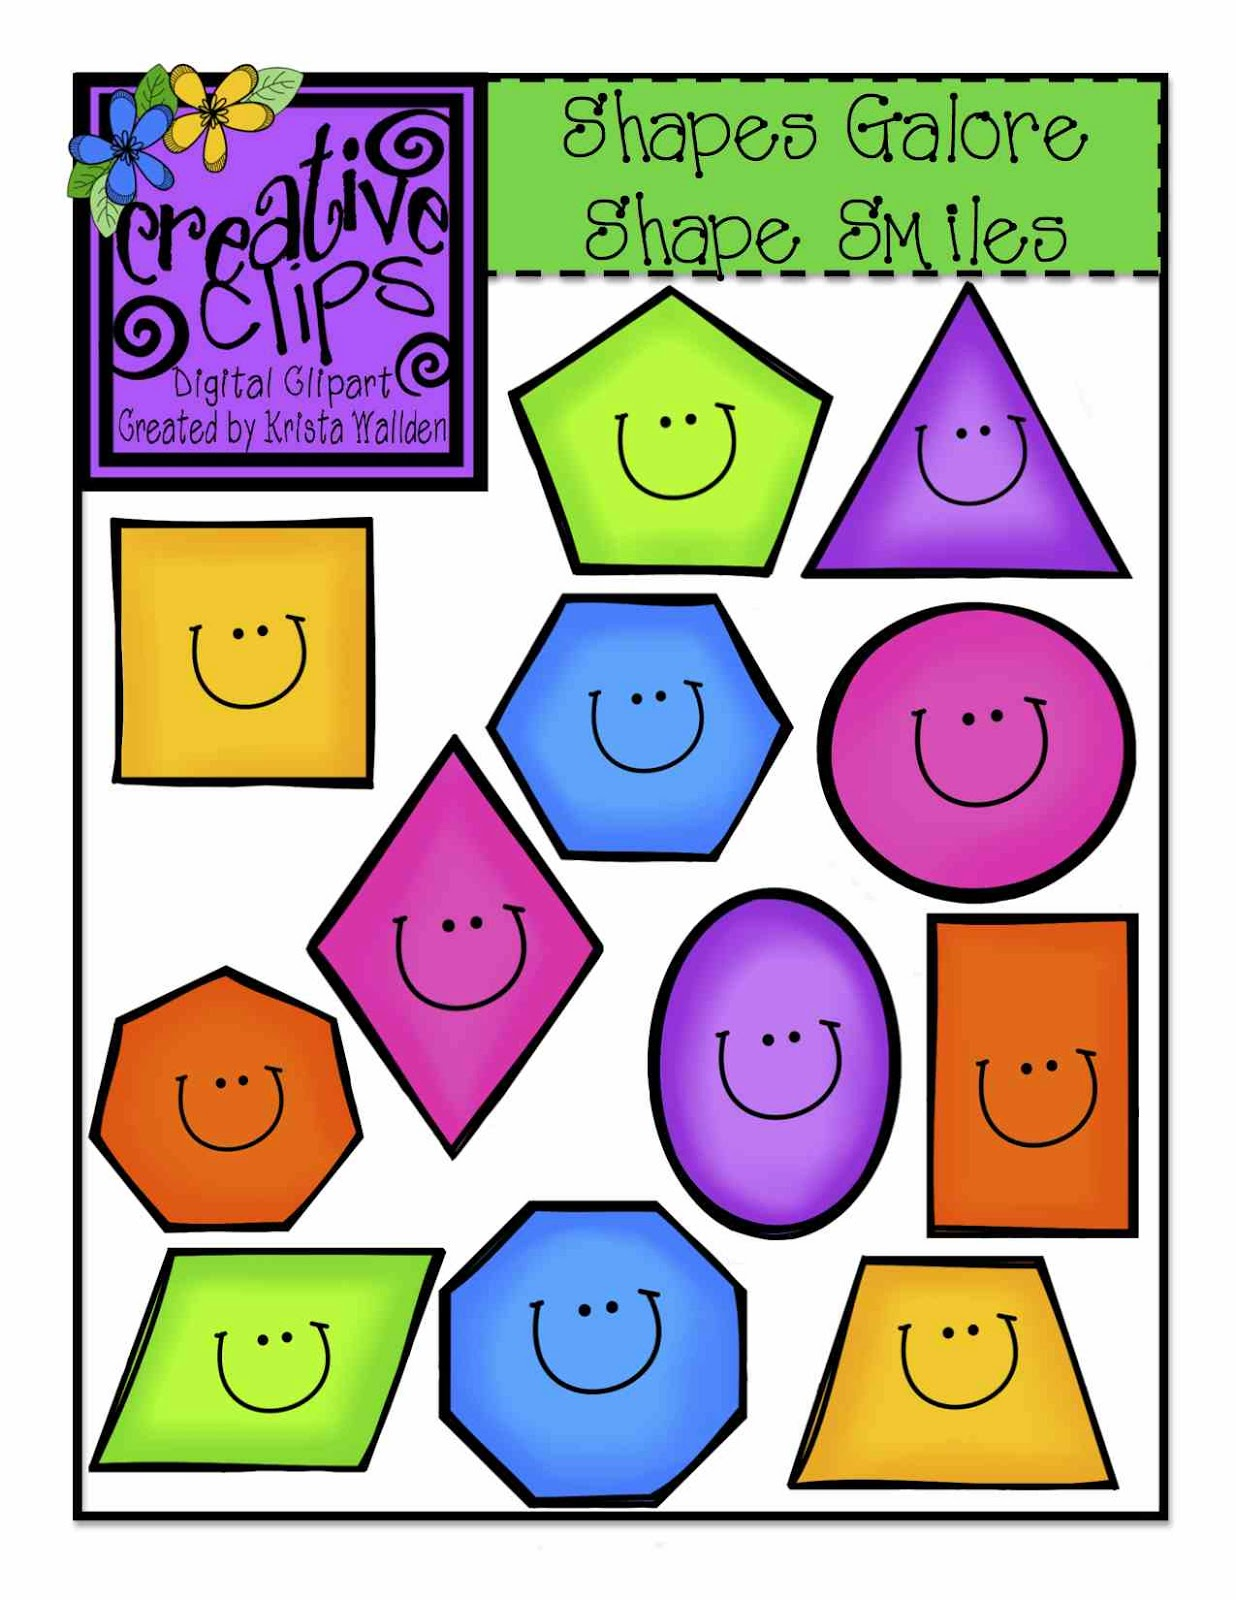 Shapes clipart Clipart Art But Basic collection